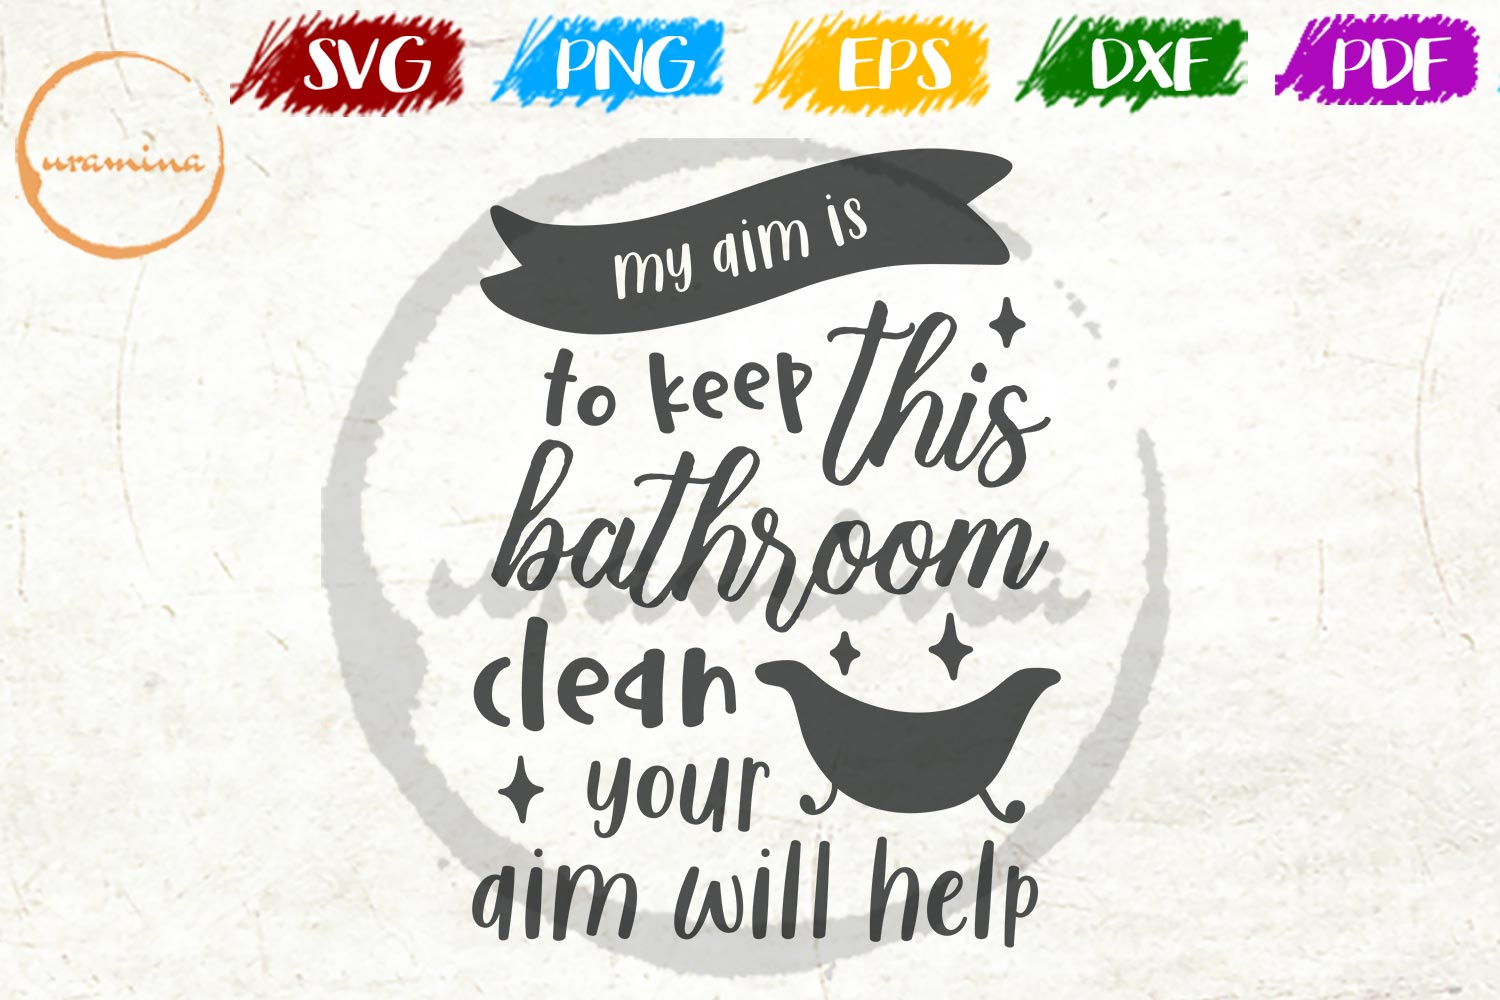 Download Free My Aim Is To Keep This Bathroom Clean Graphic By Uramina for Cricut Explore, Silhouette and other cutting machines.